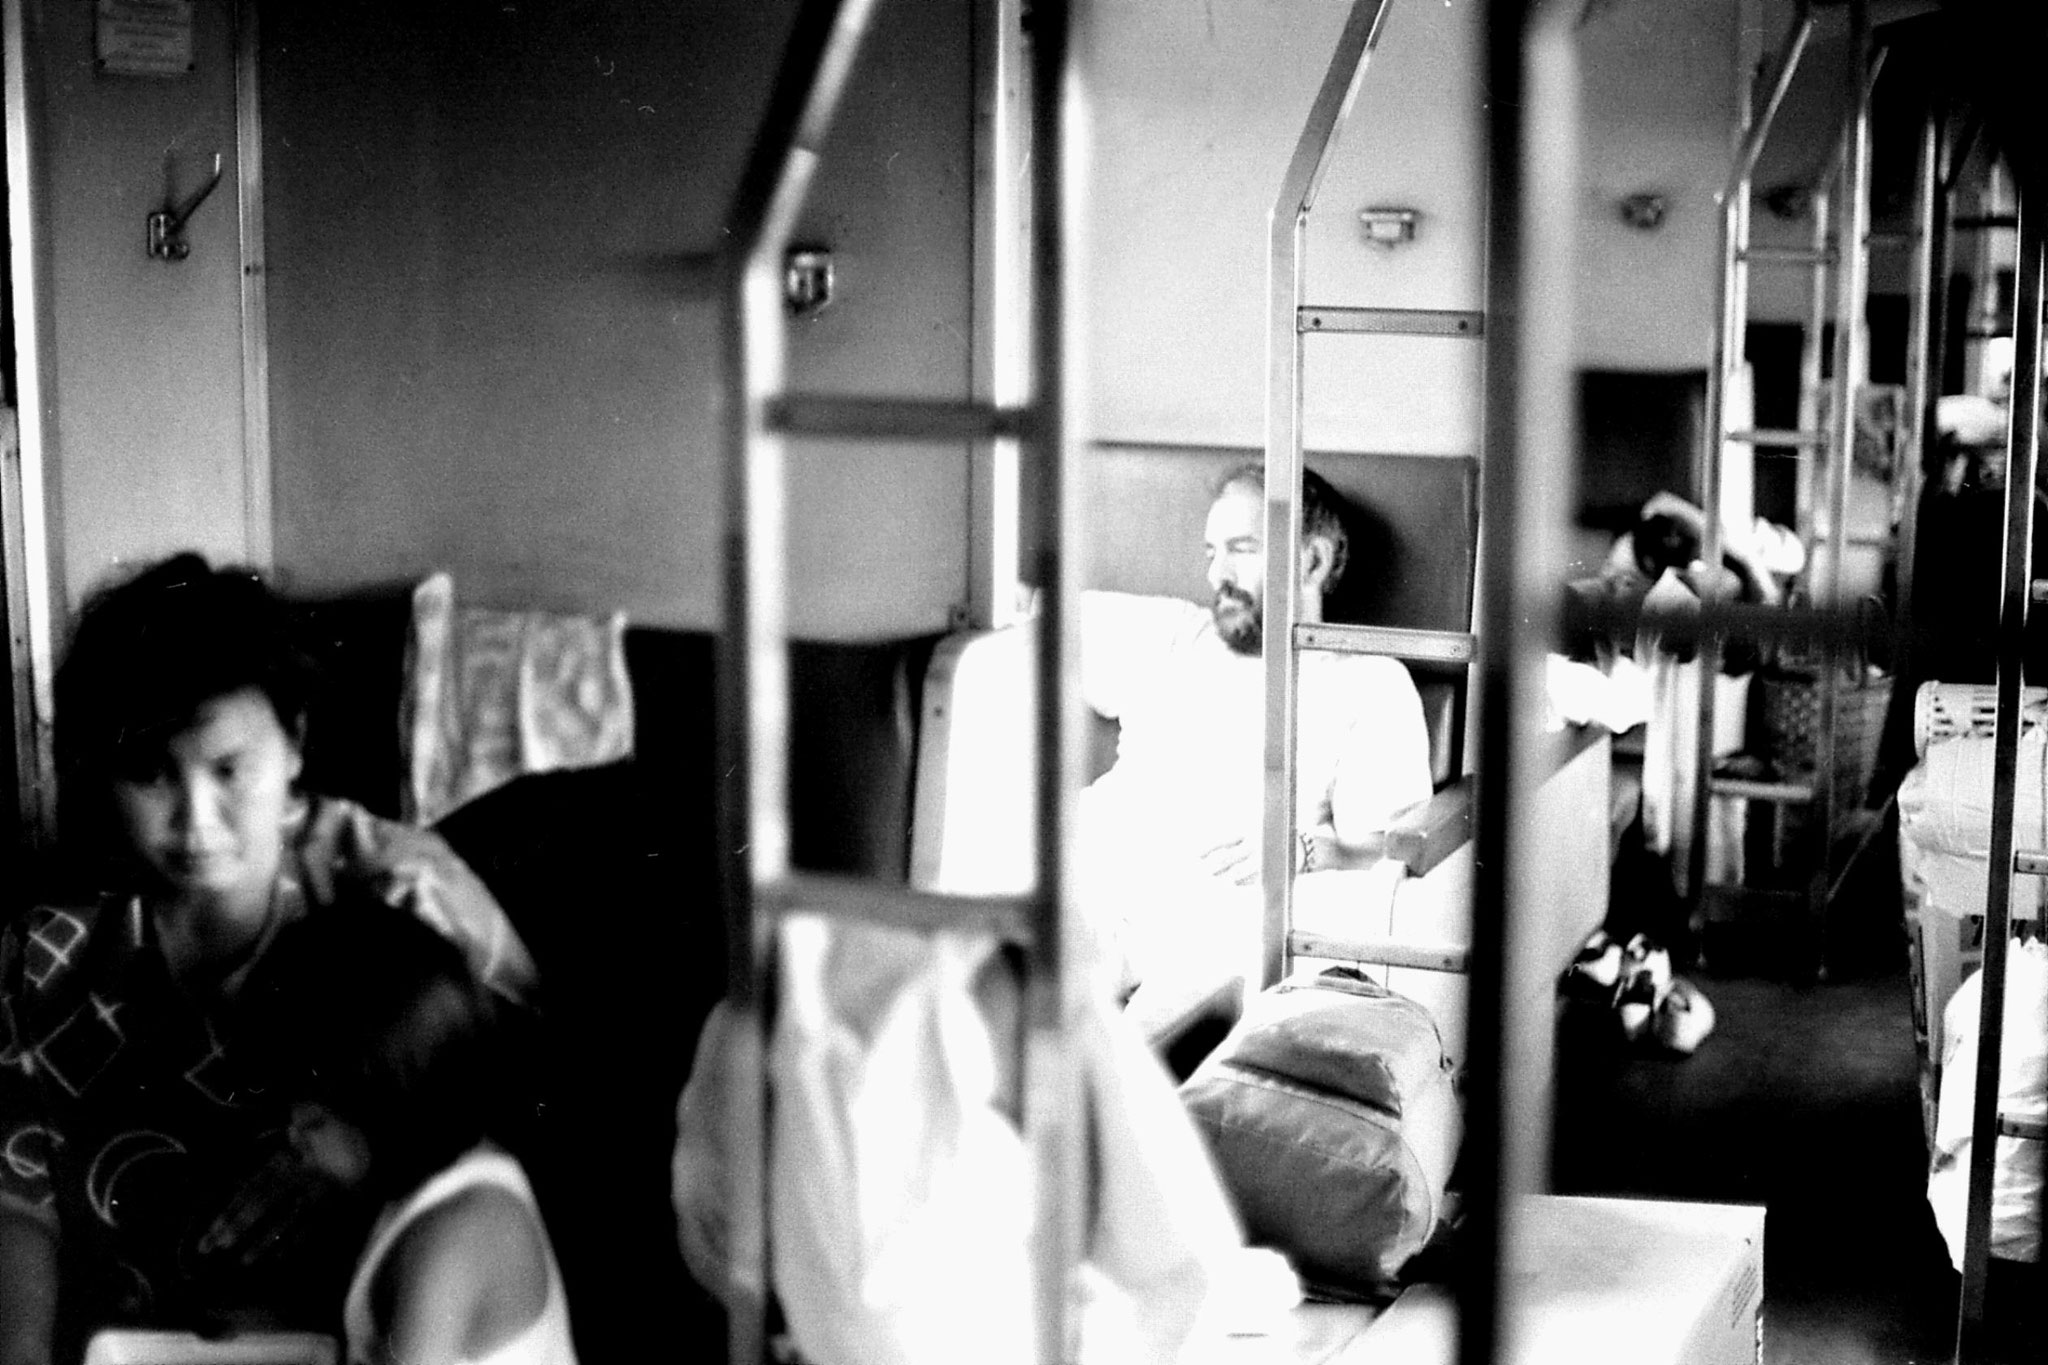 18/6/1990: 30: second class sleeper carriage